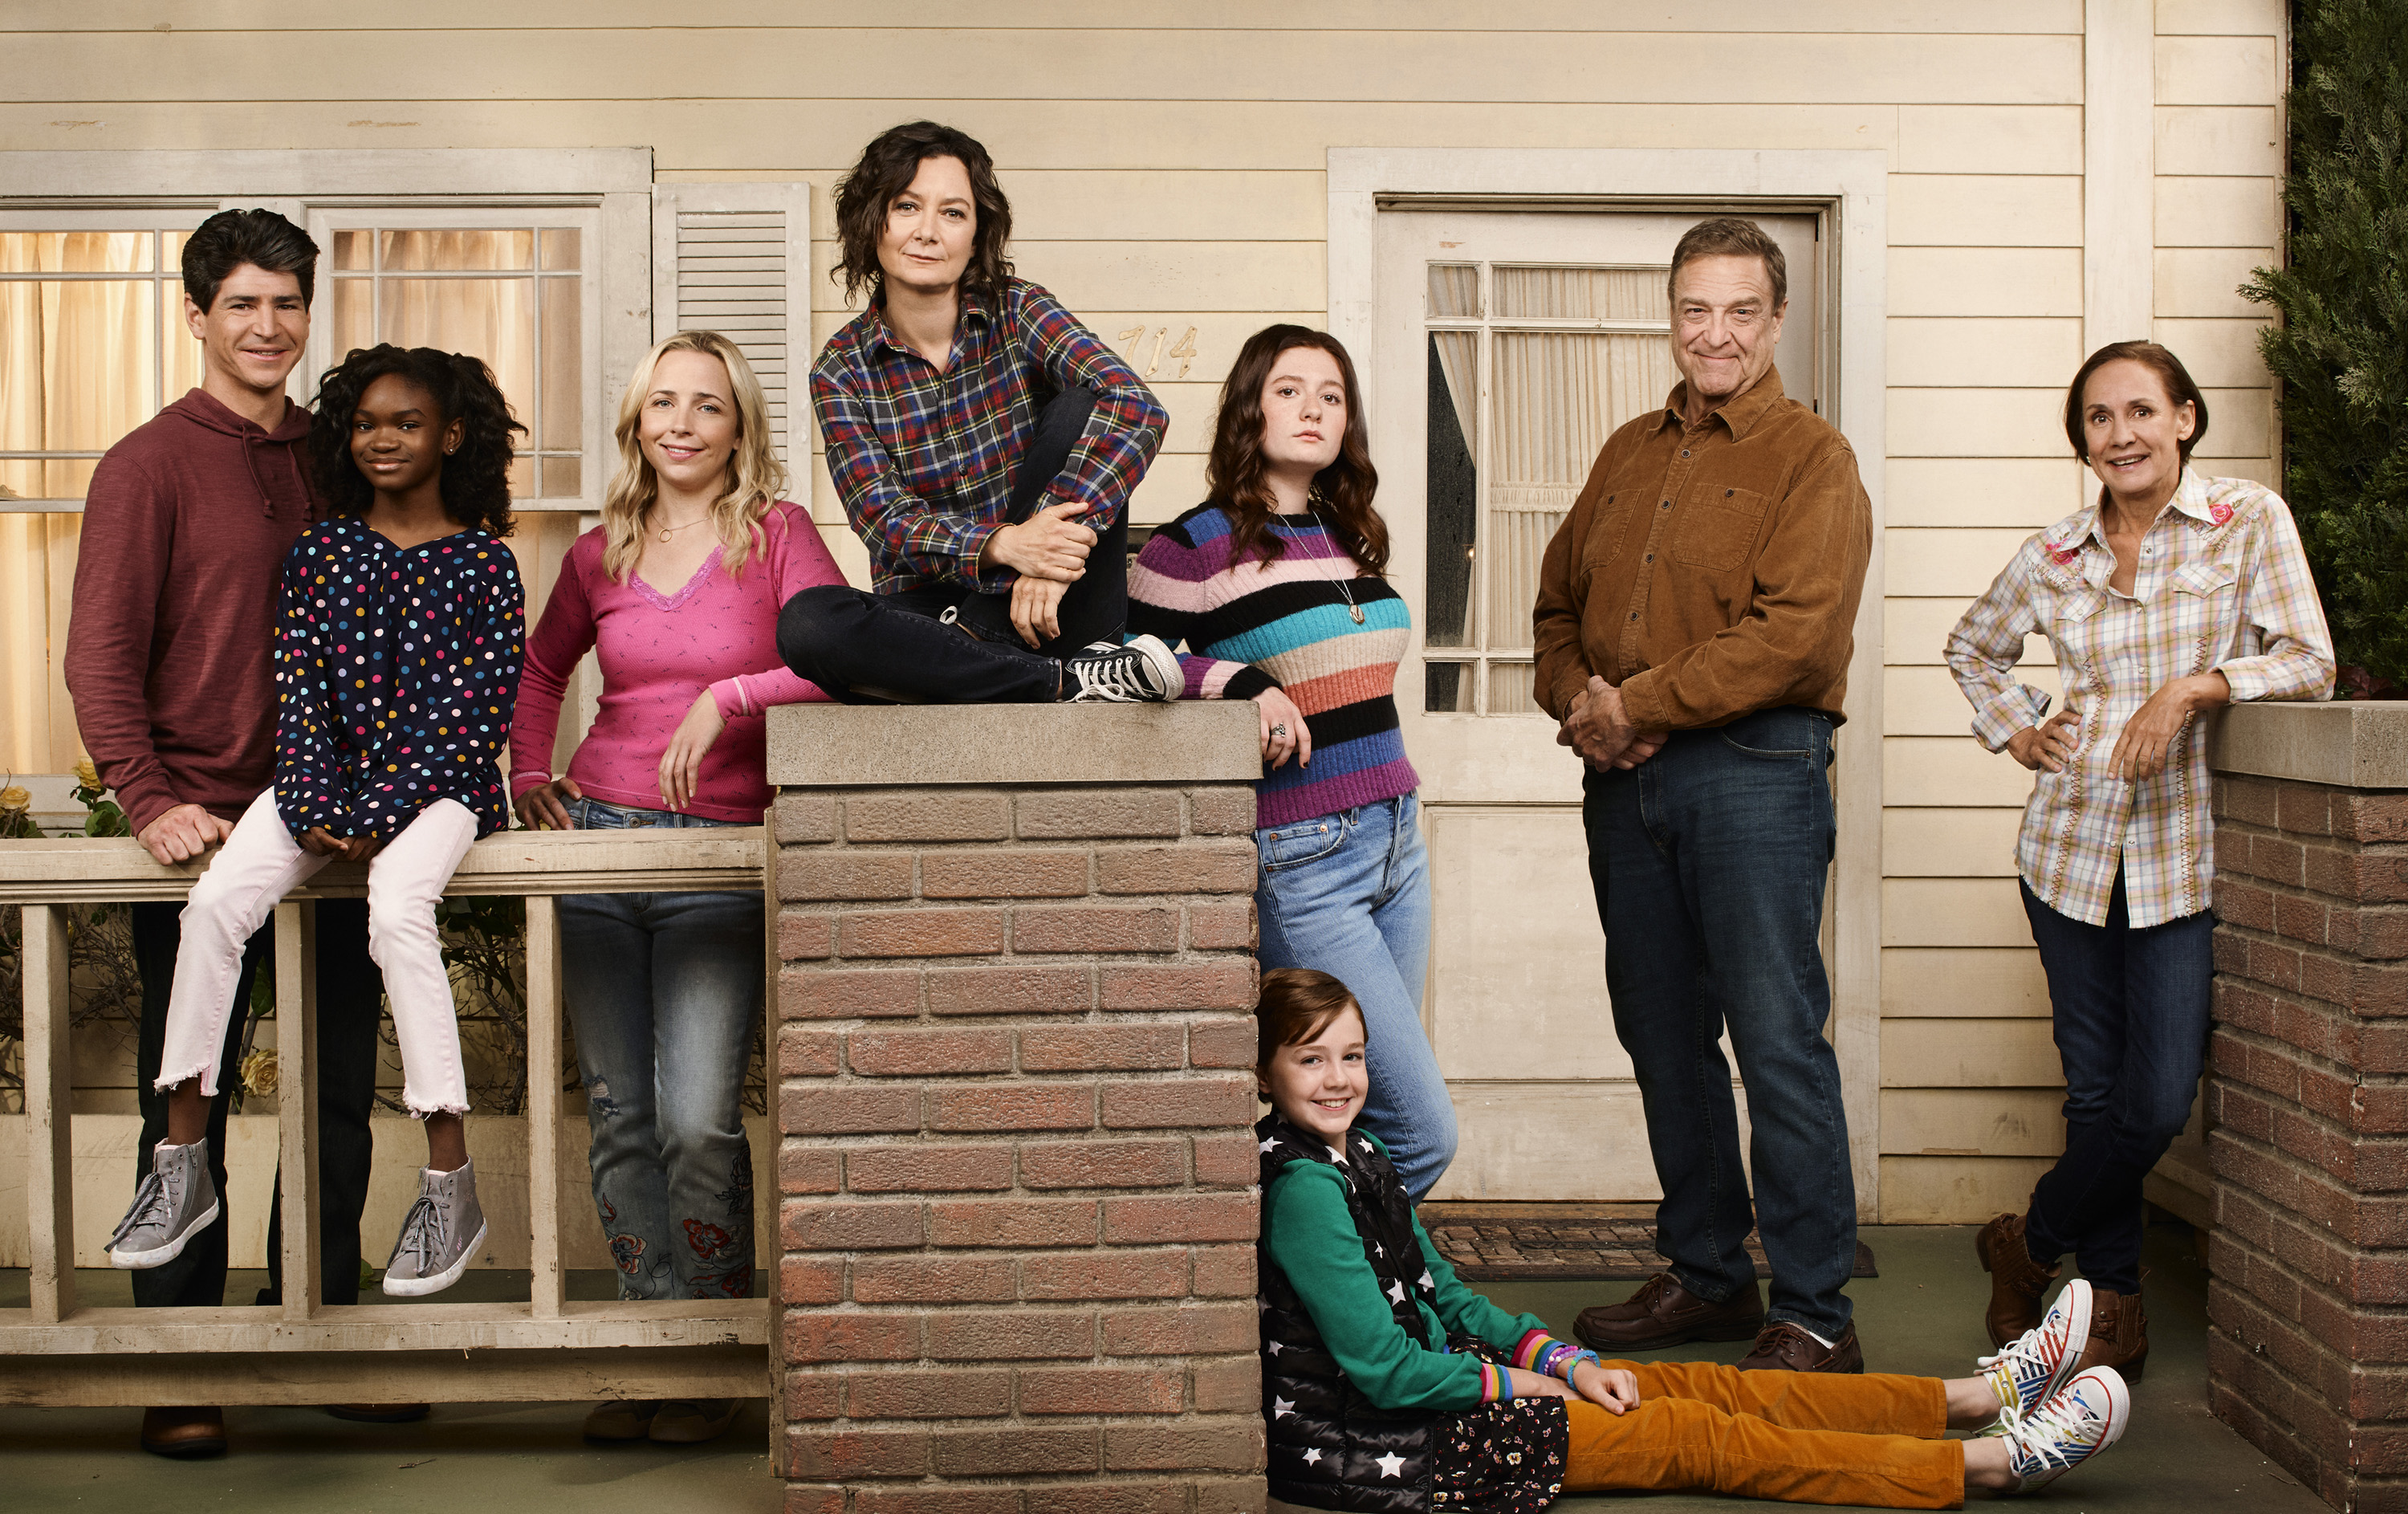 """Where & How to Watch, Livestream Tonight's Live """"The Conners"""" Episode 